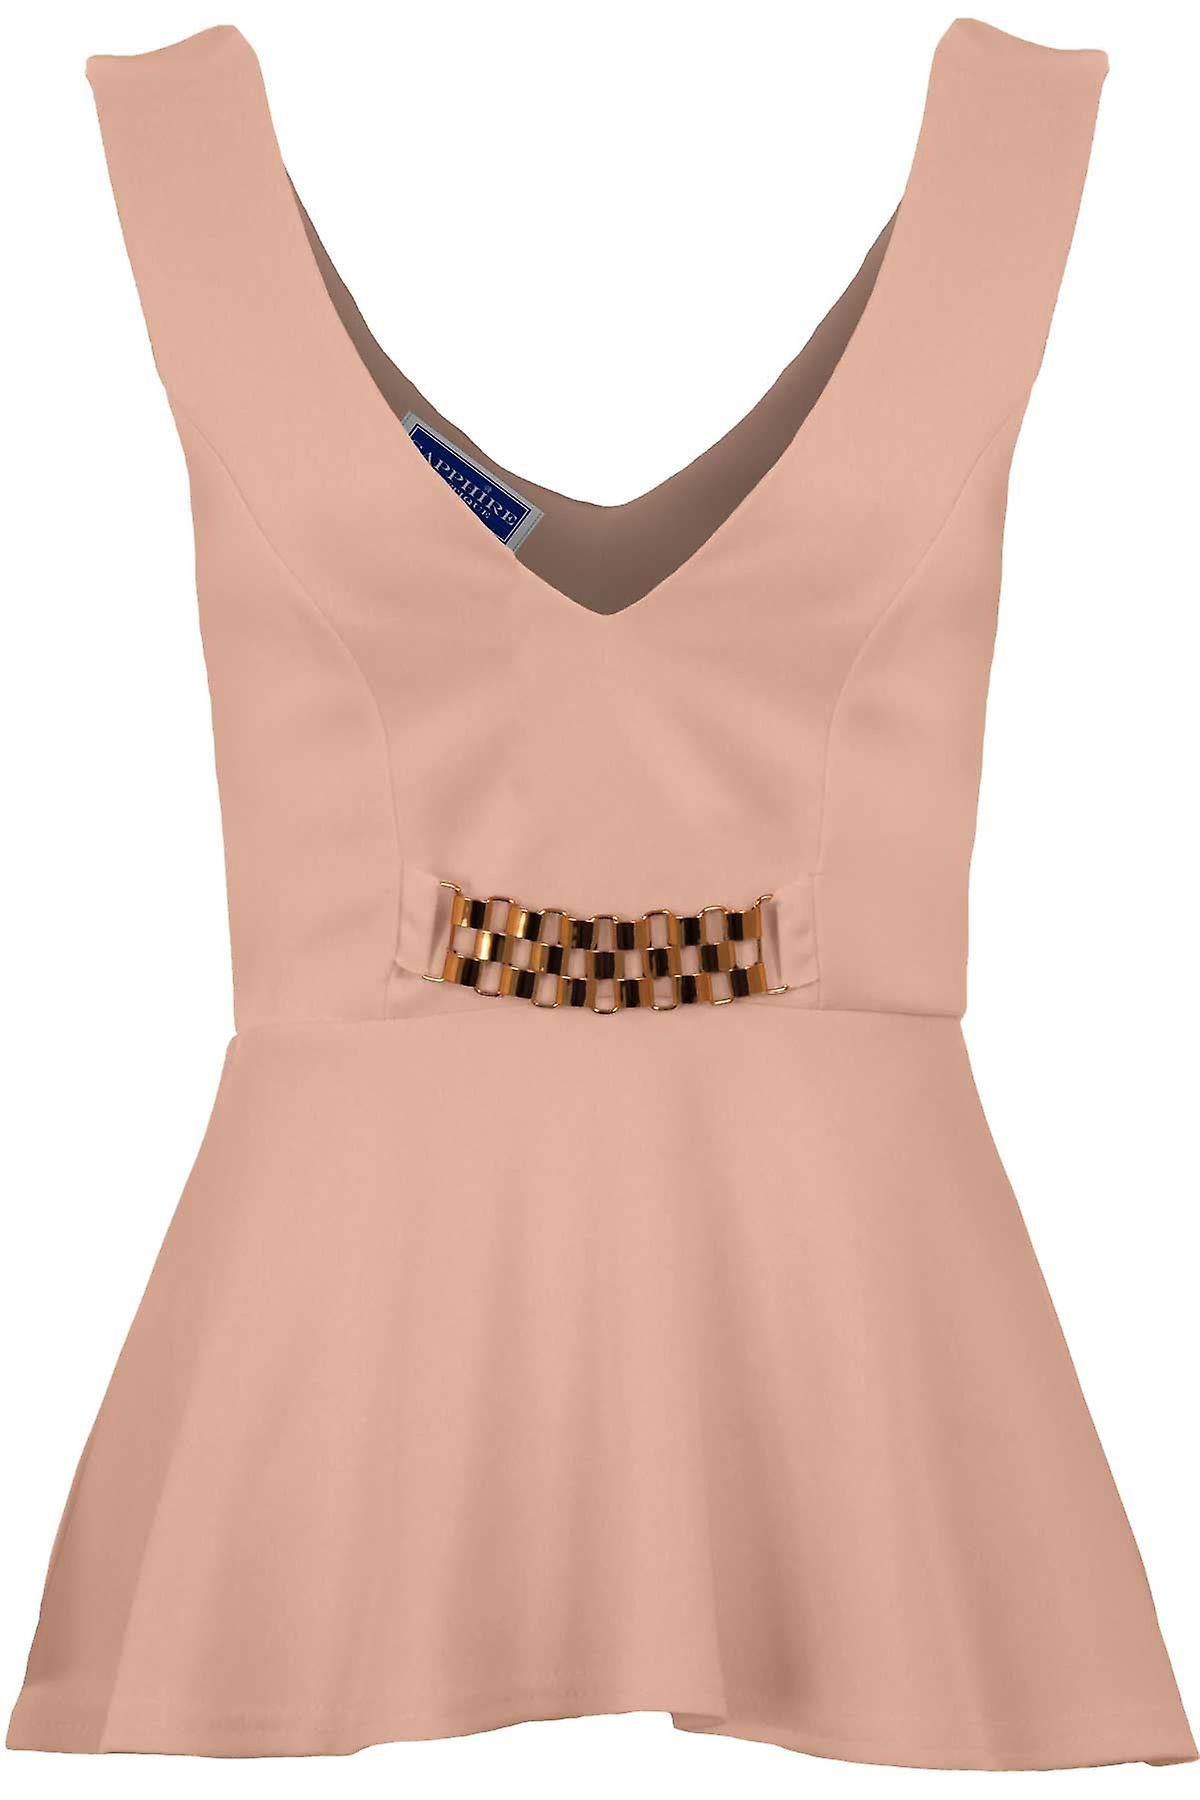 Ladies Sleeveless V Neck Low Back Gold Chain Waist Insert Flare Peplum Top